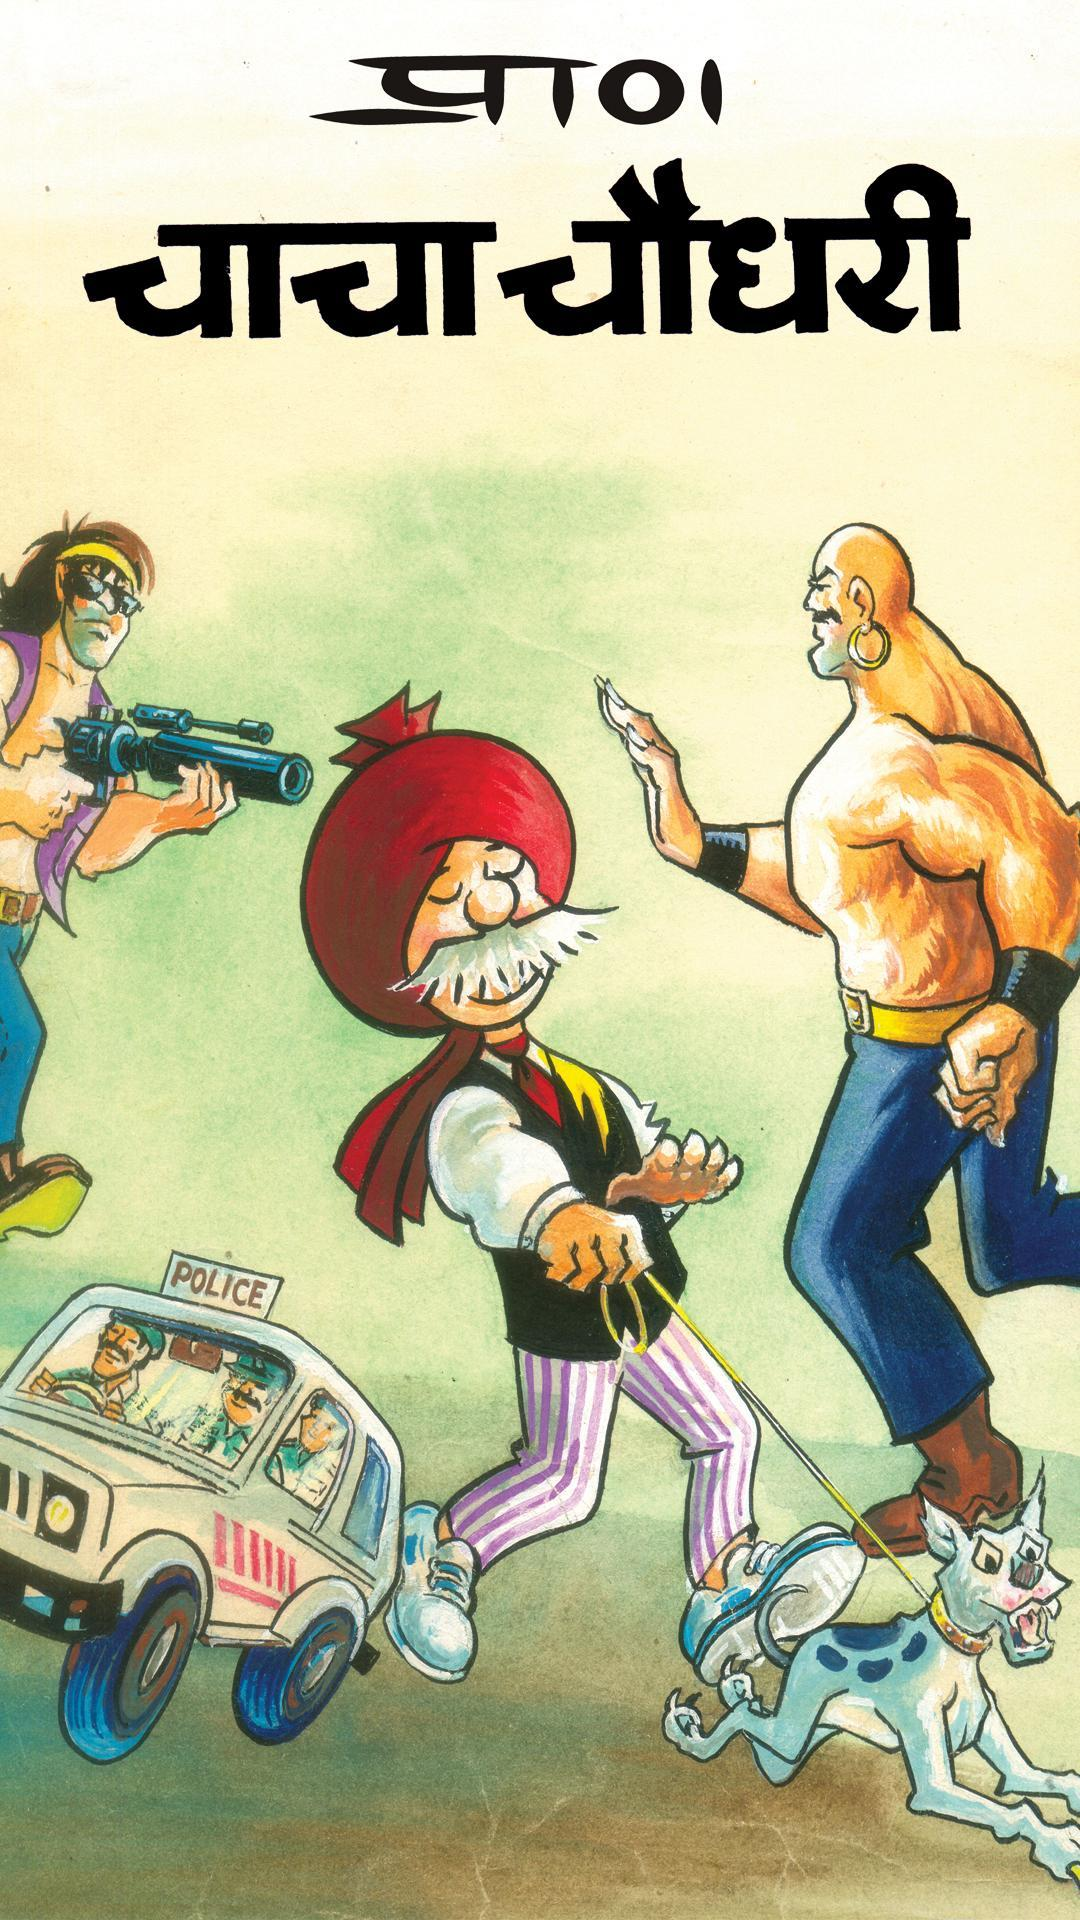 CHACHA CHAUDHARY CARTOON for Android - APK Download